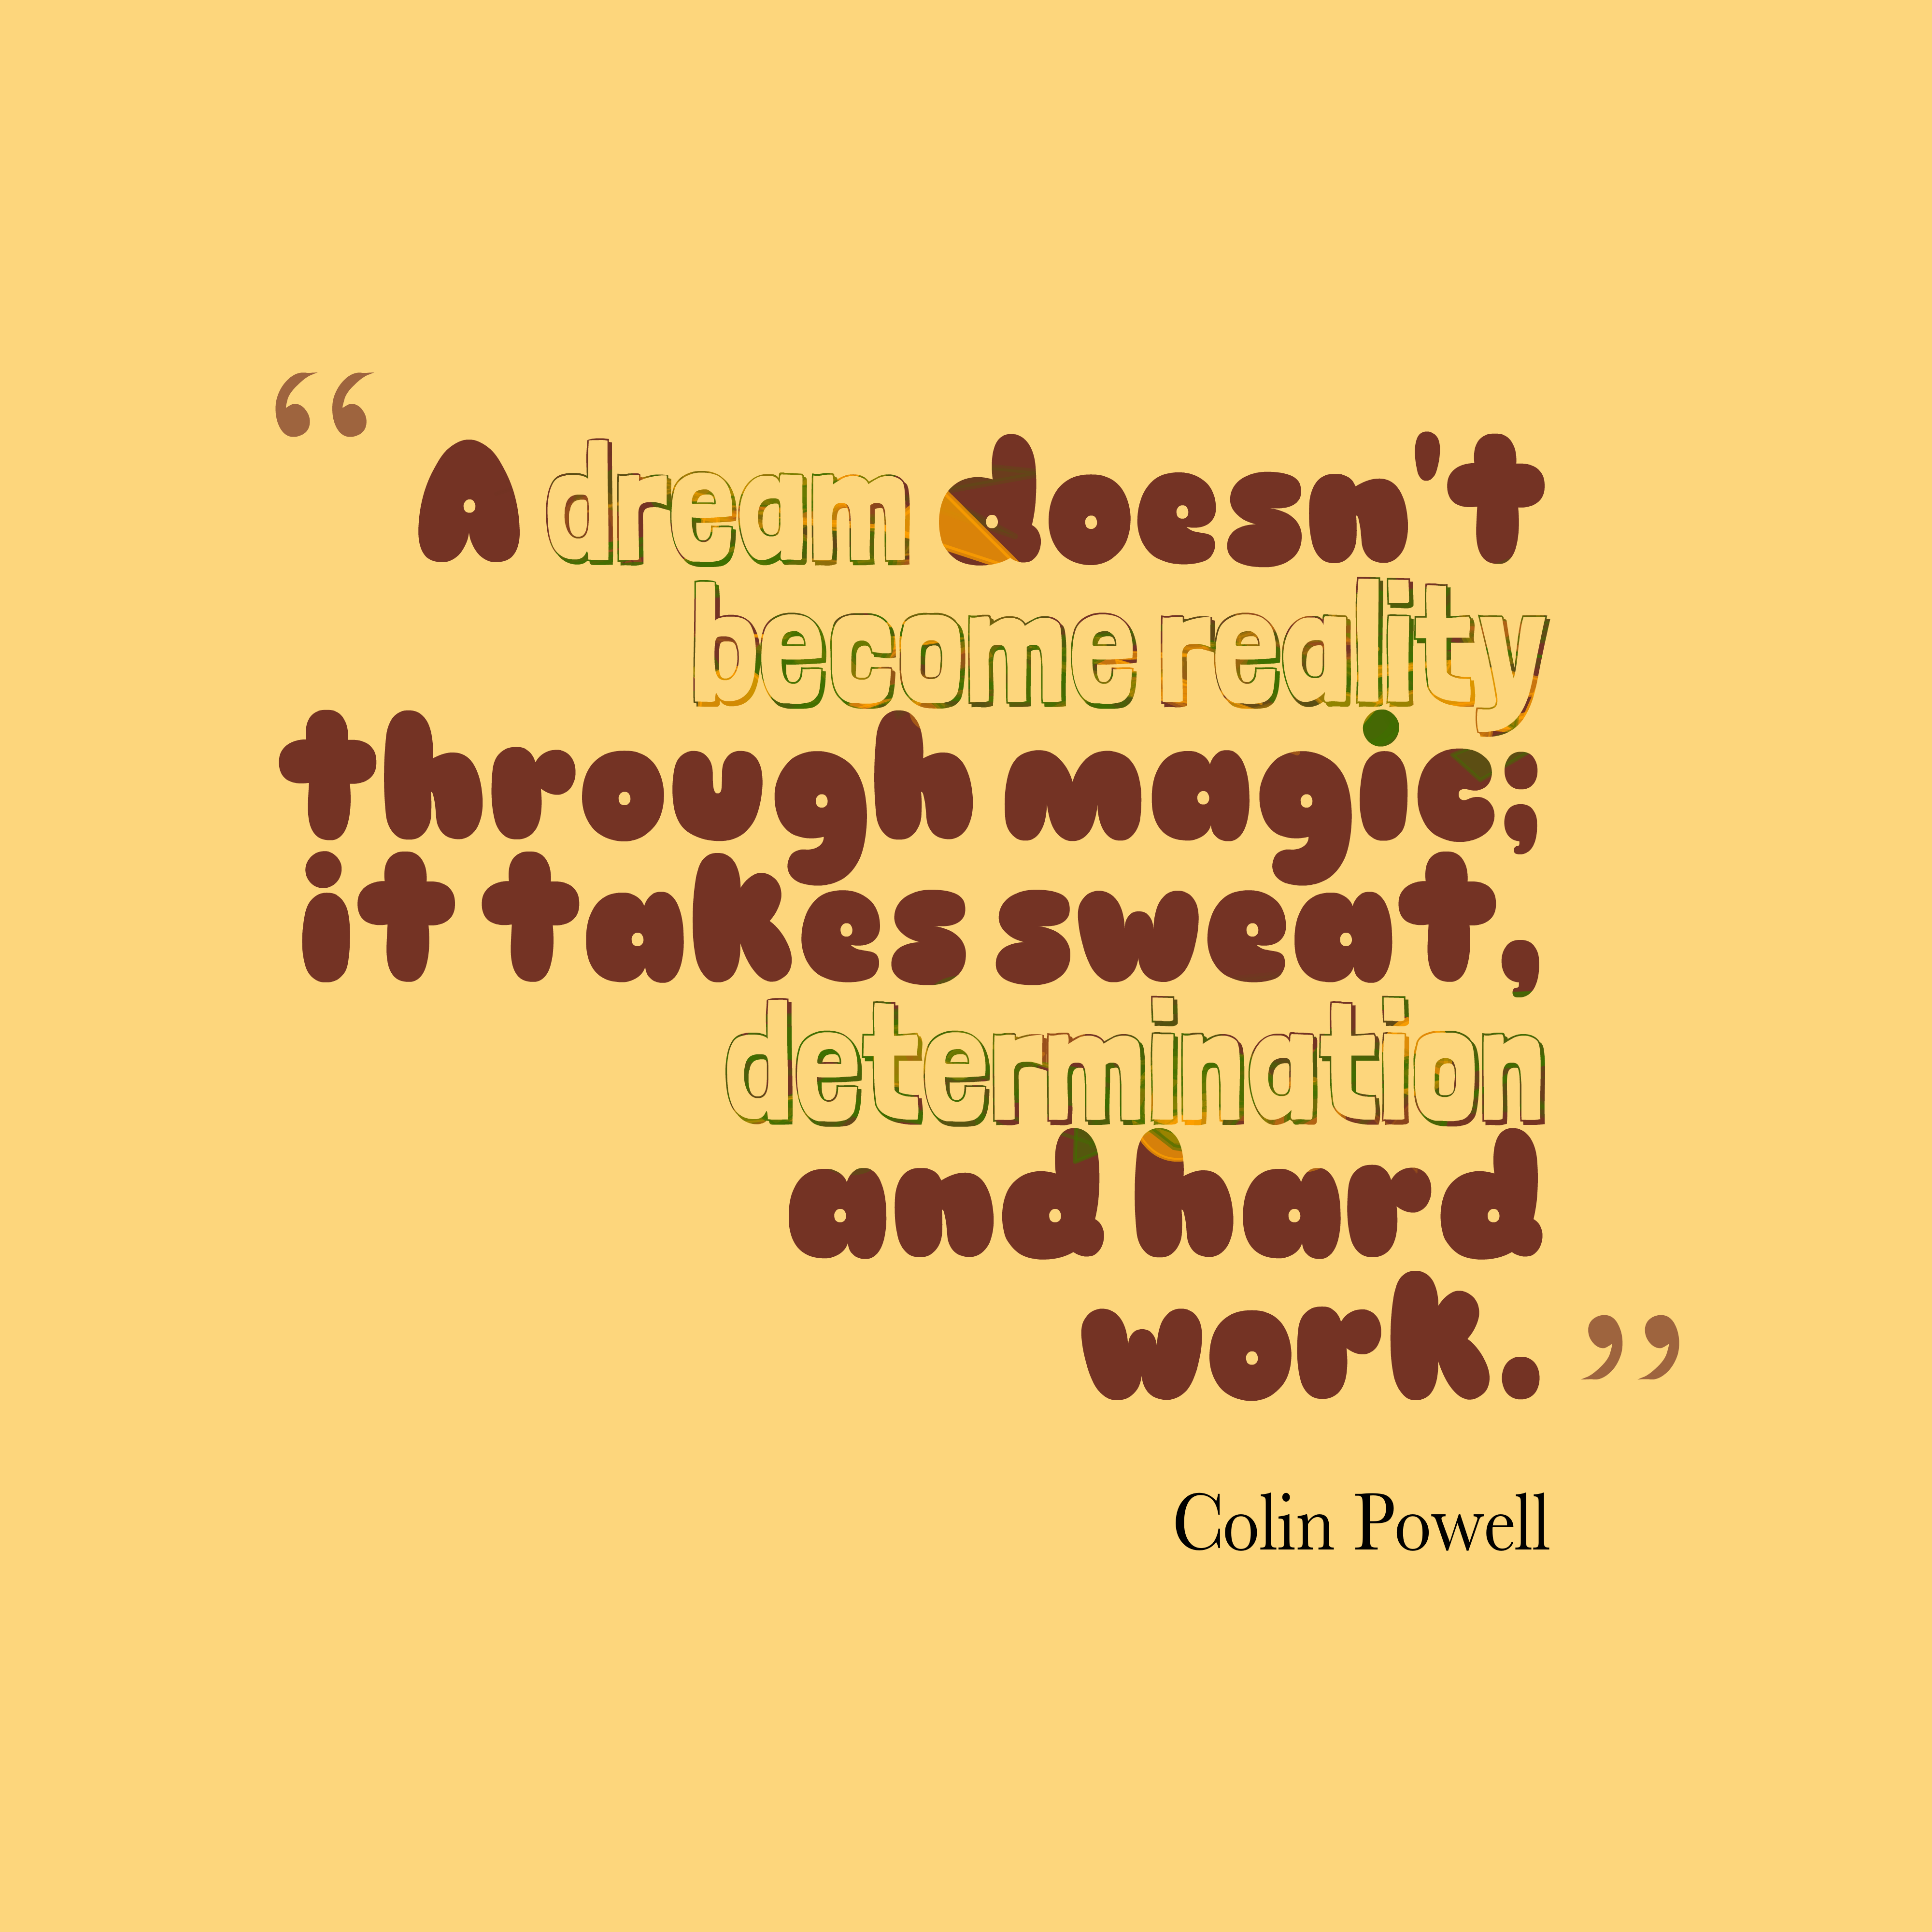 Quotes image of A dream doesn't become reality through magic; it takes sweat, determination and hard work.